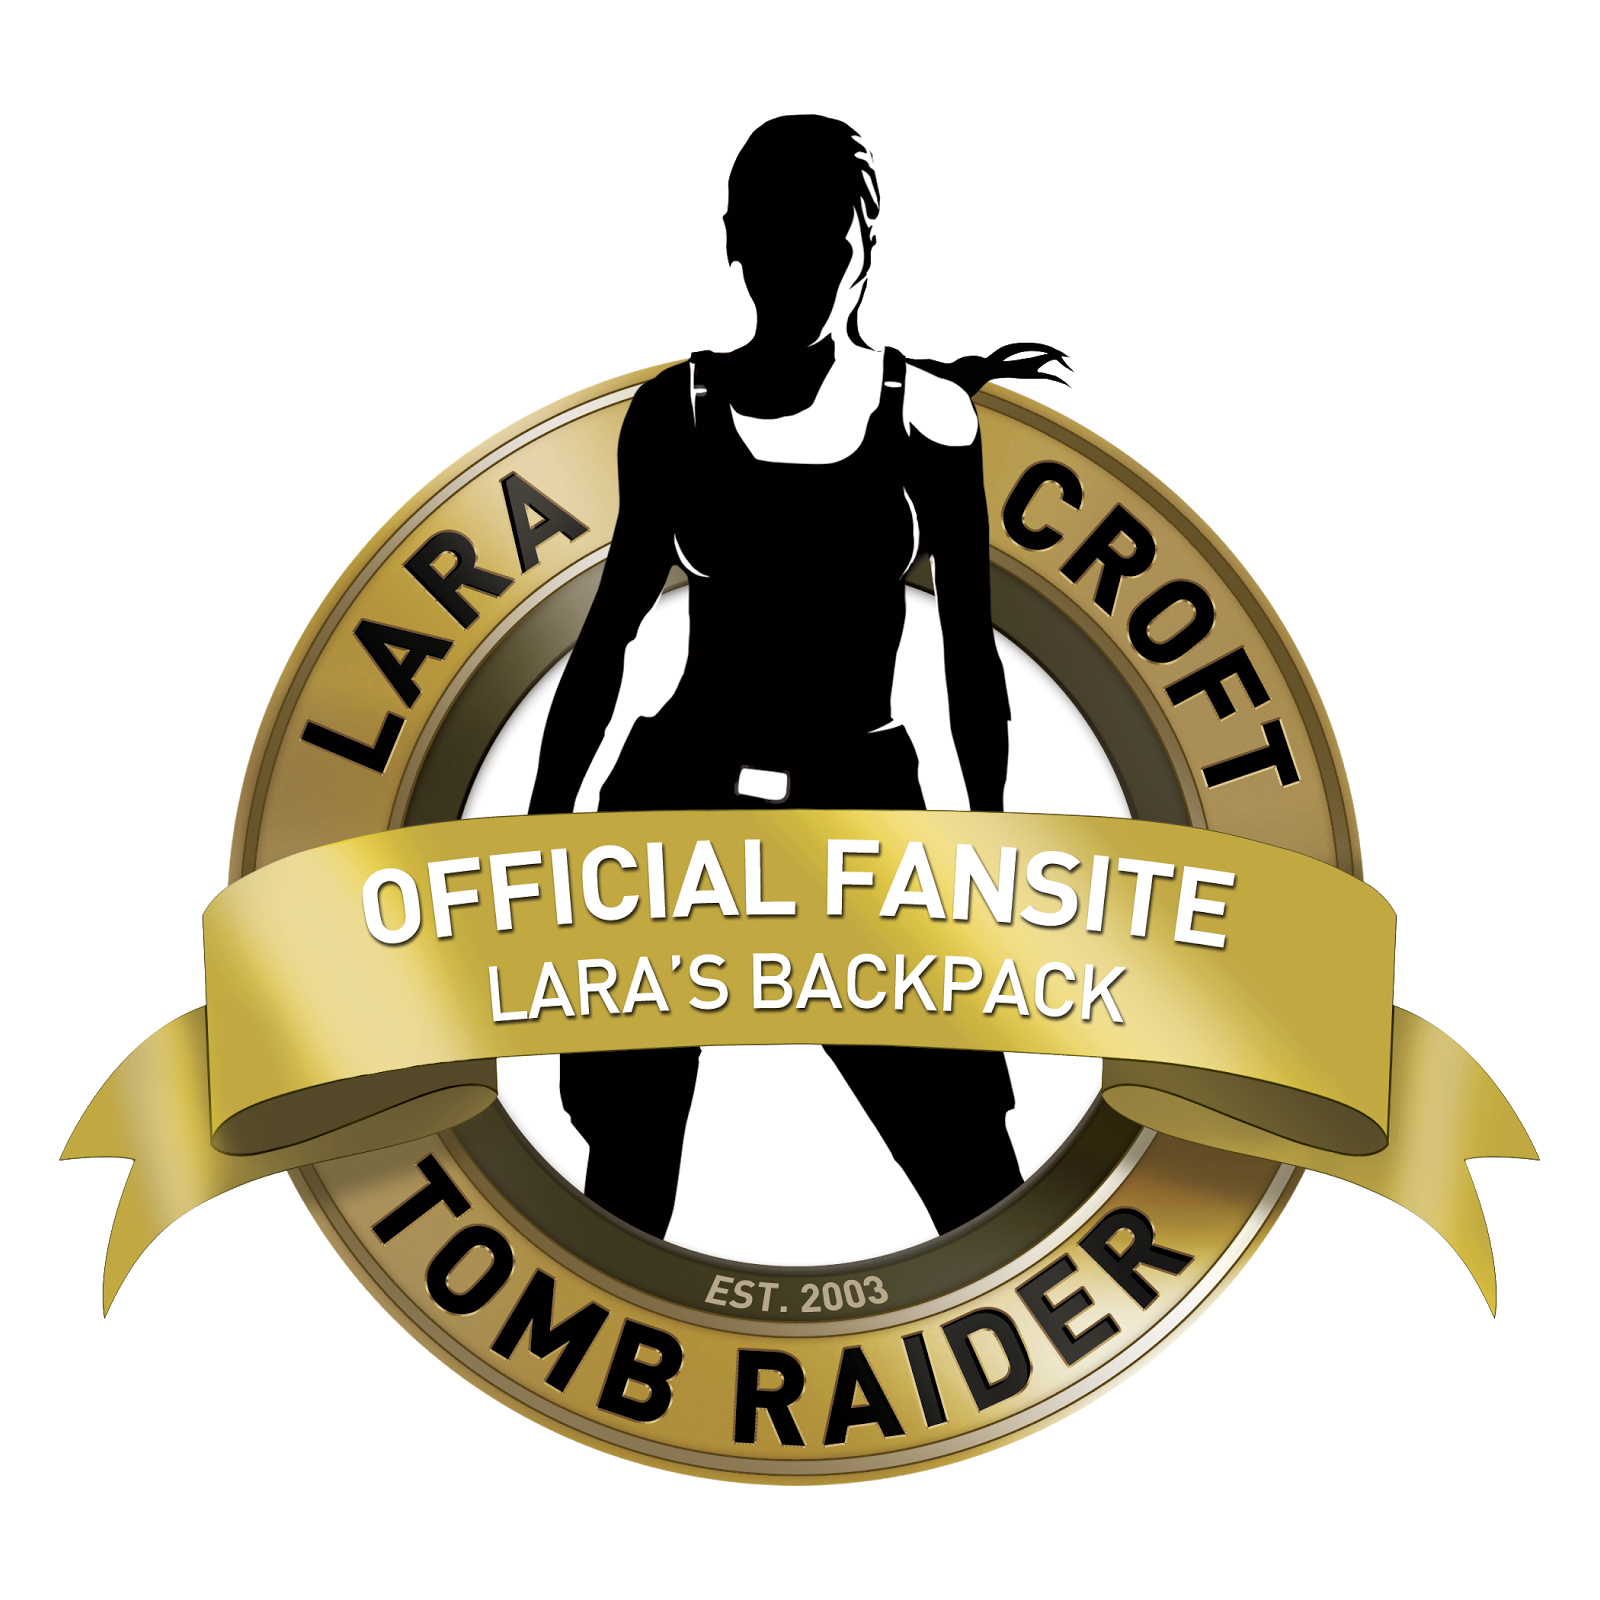 Lara's Backpack